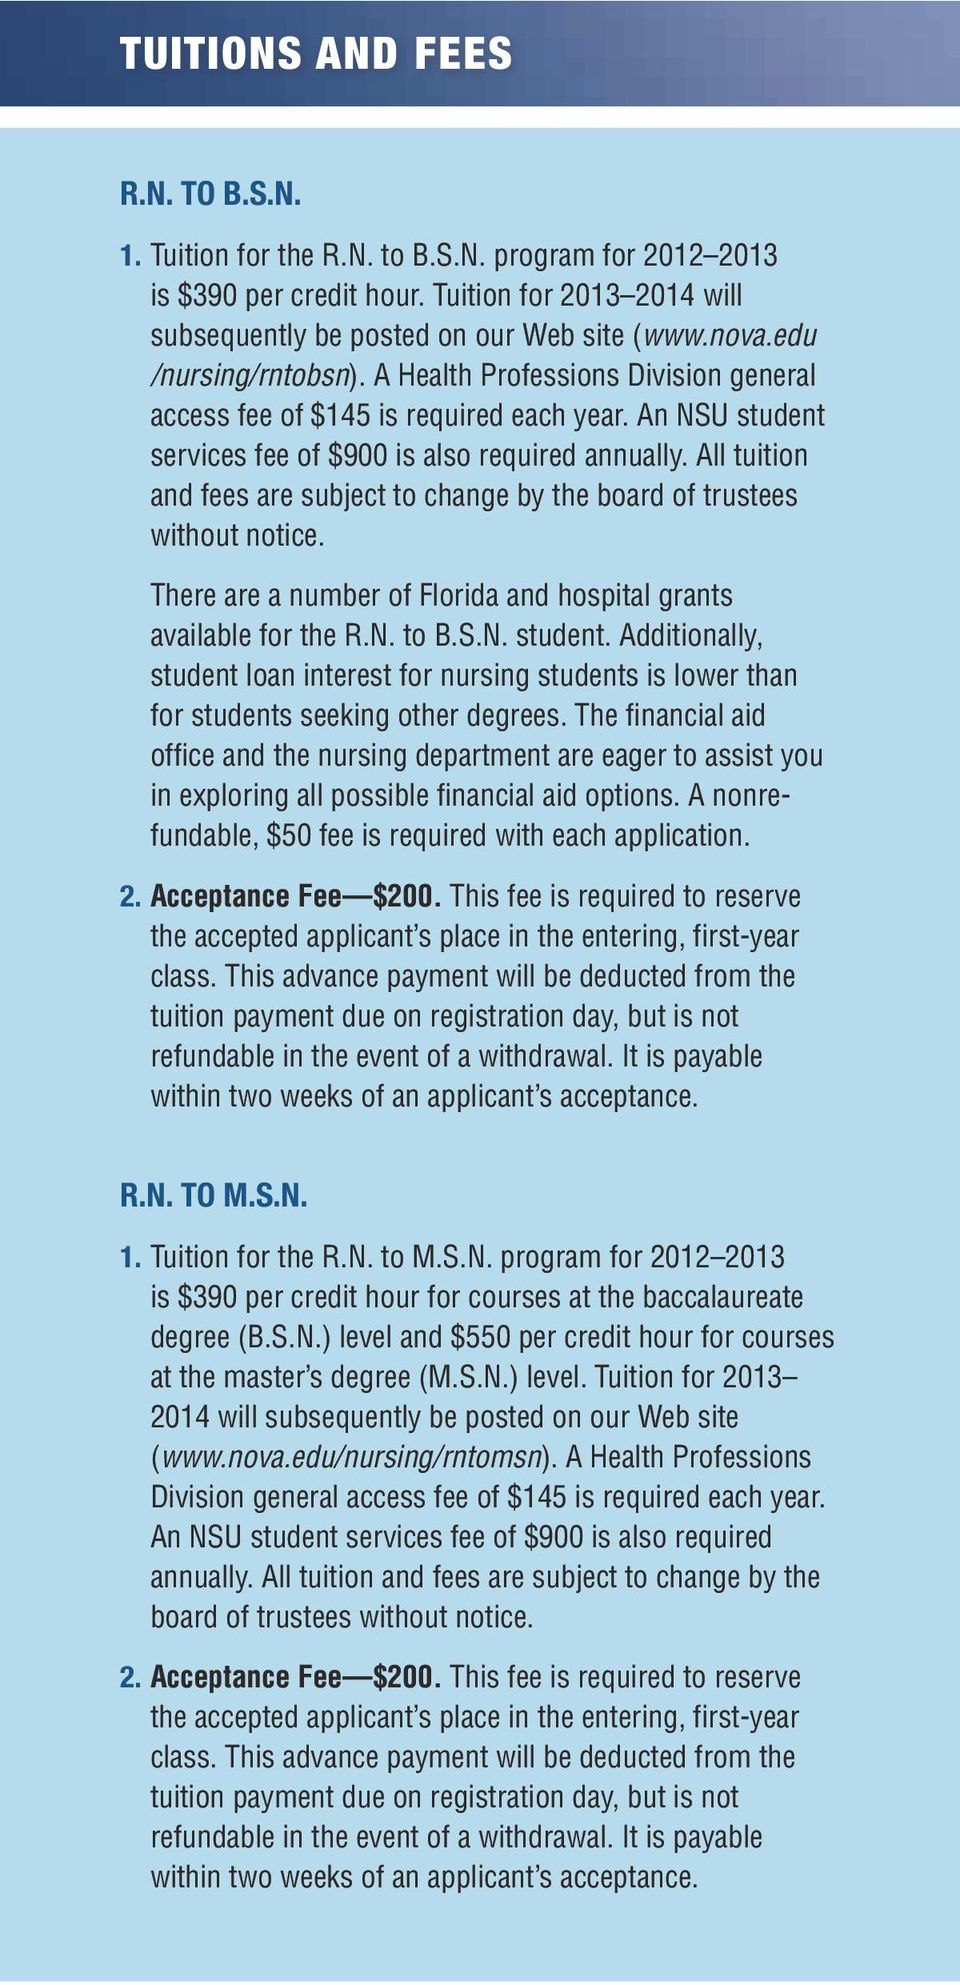 All tuition and fees are subject to change by the board of trustees without notice. There are a number of Florida and hospital grants available for the R.N. to B.S.N. student.